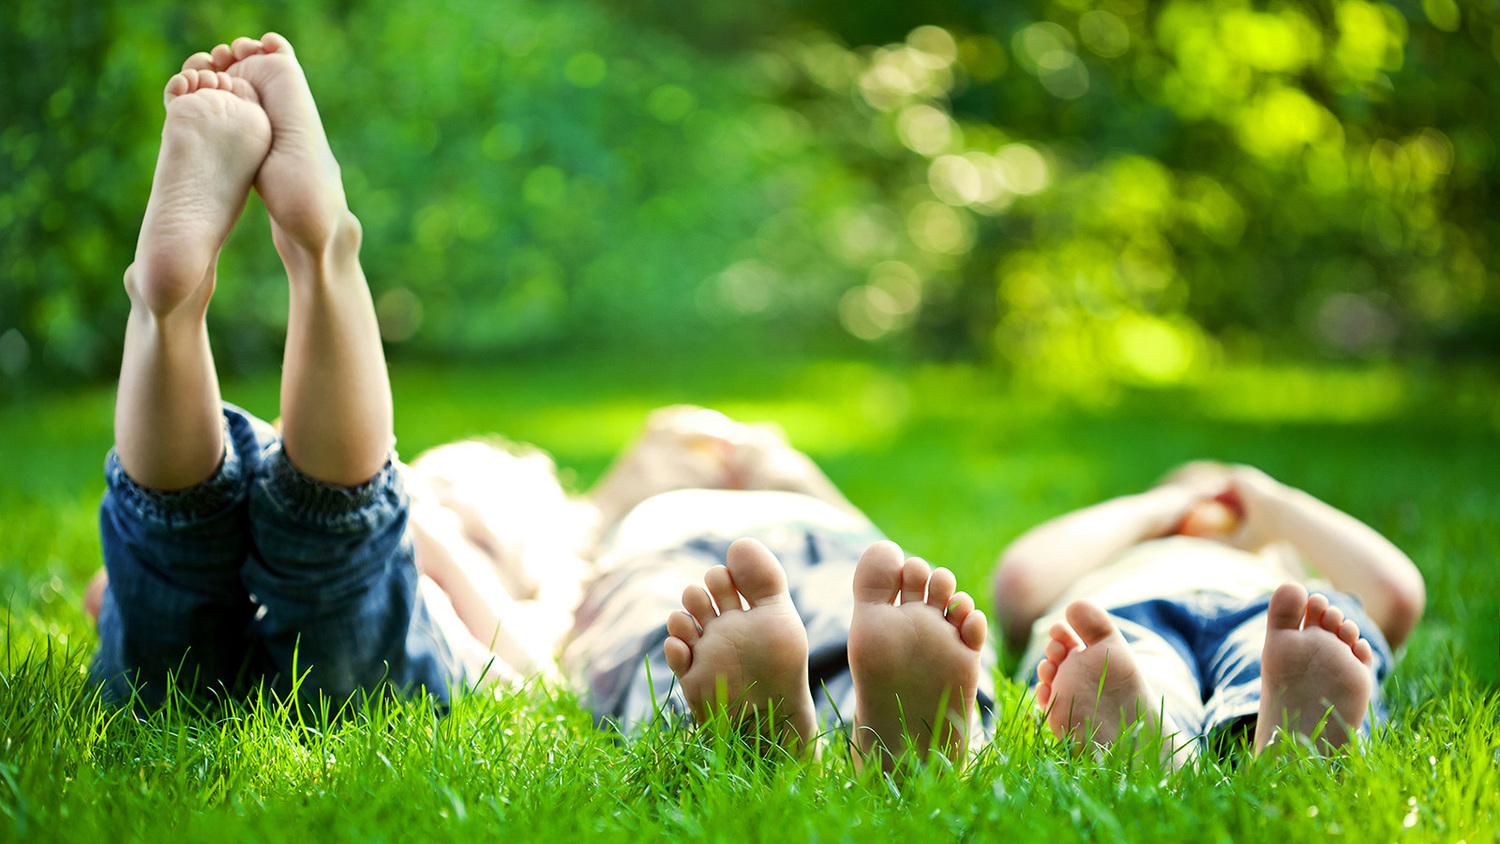 04 Kids Legs in Green Grass.jpg